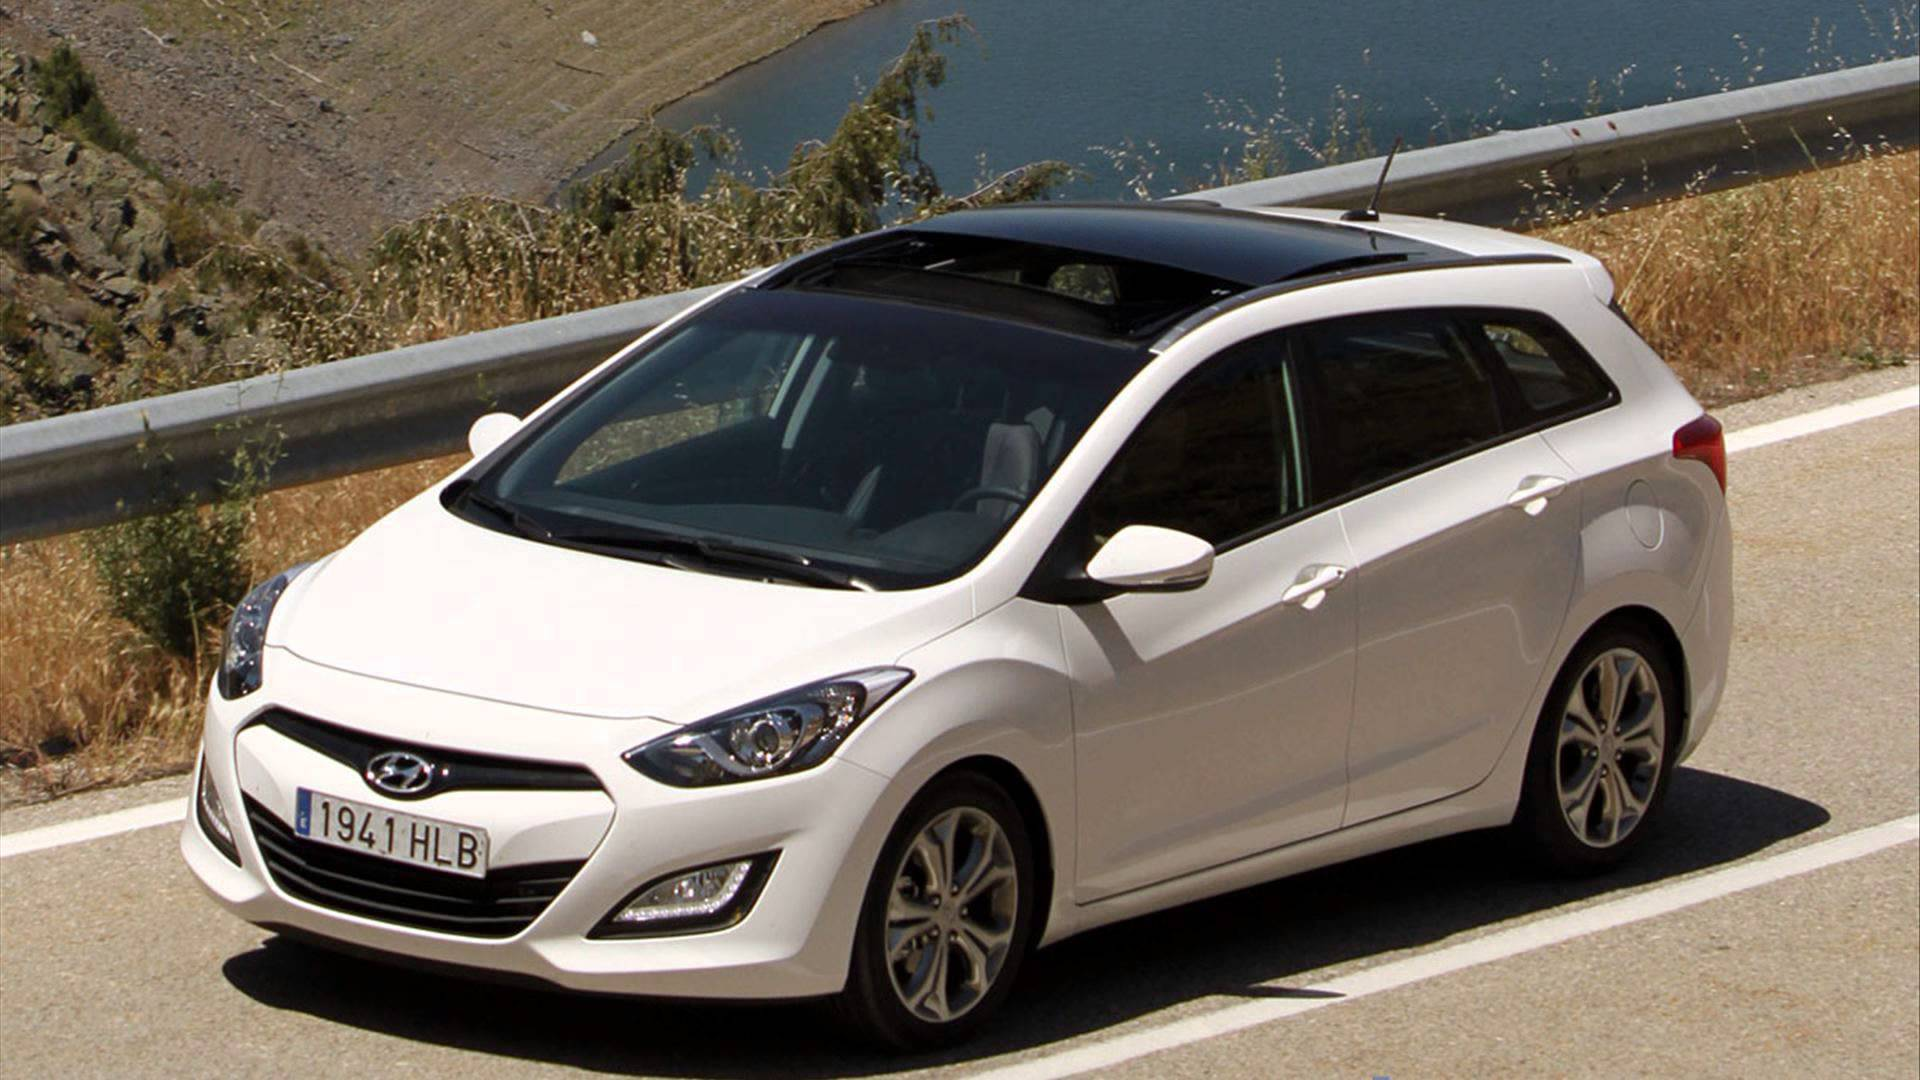 Pictures of hyundai i30cw 2016